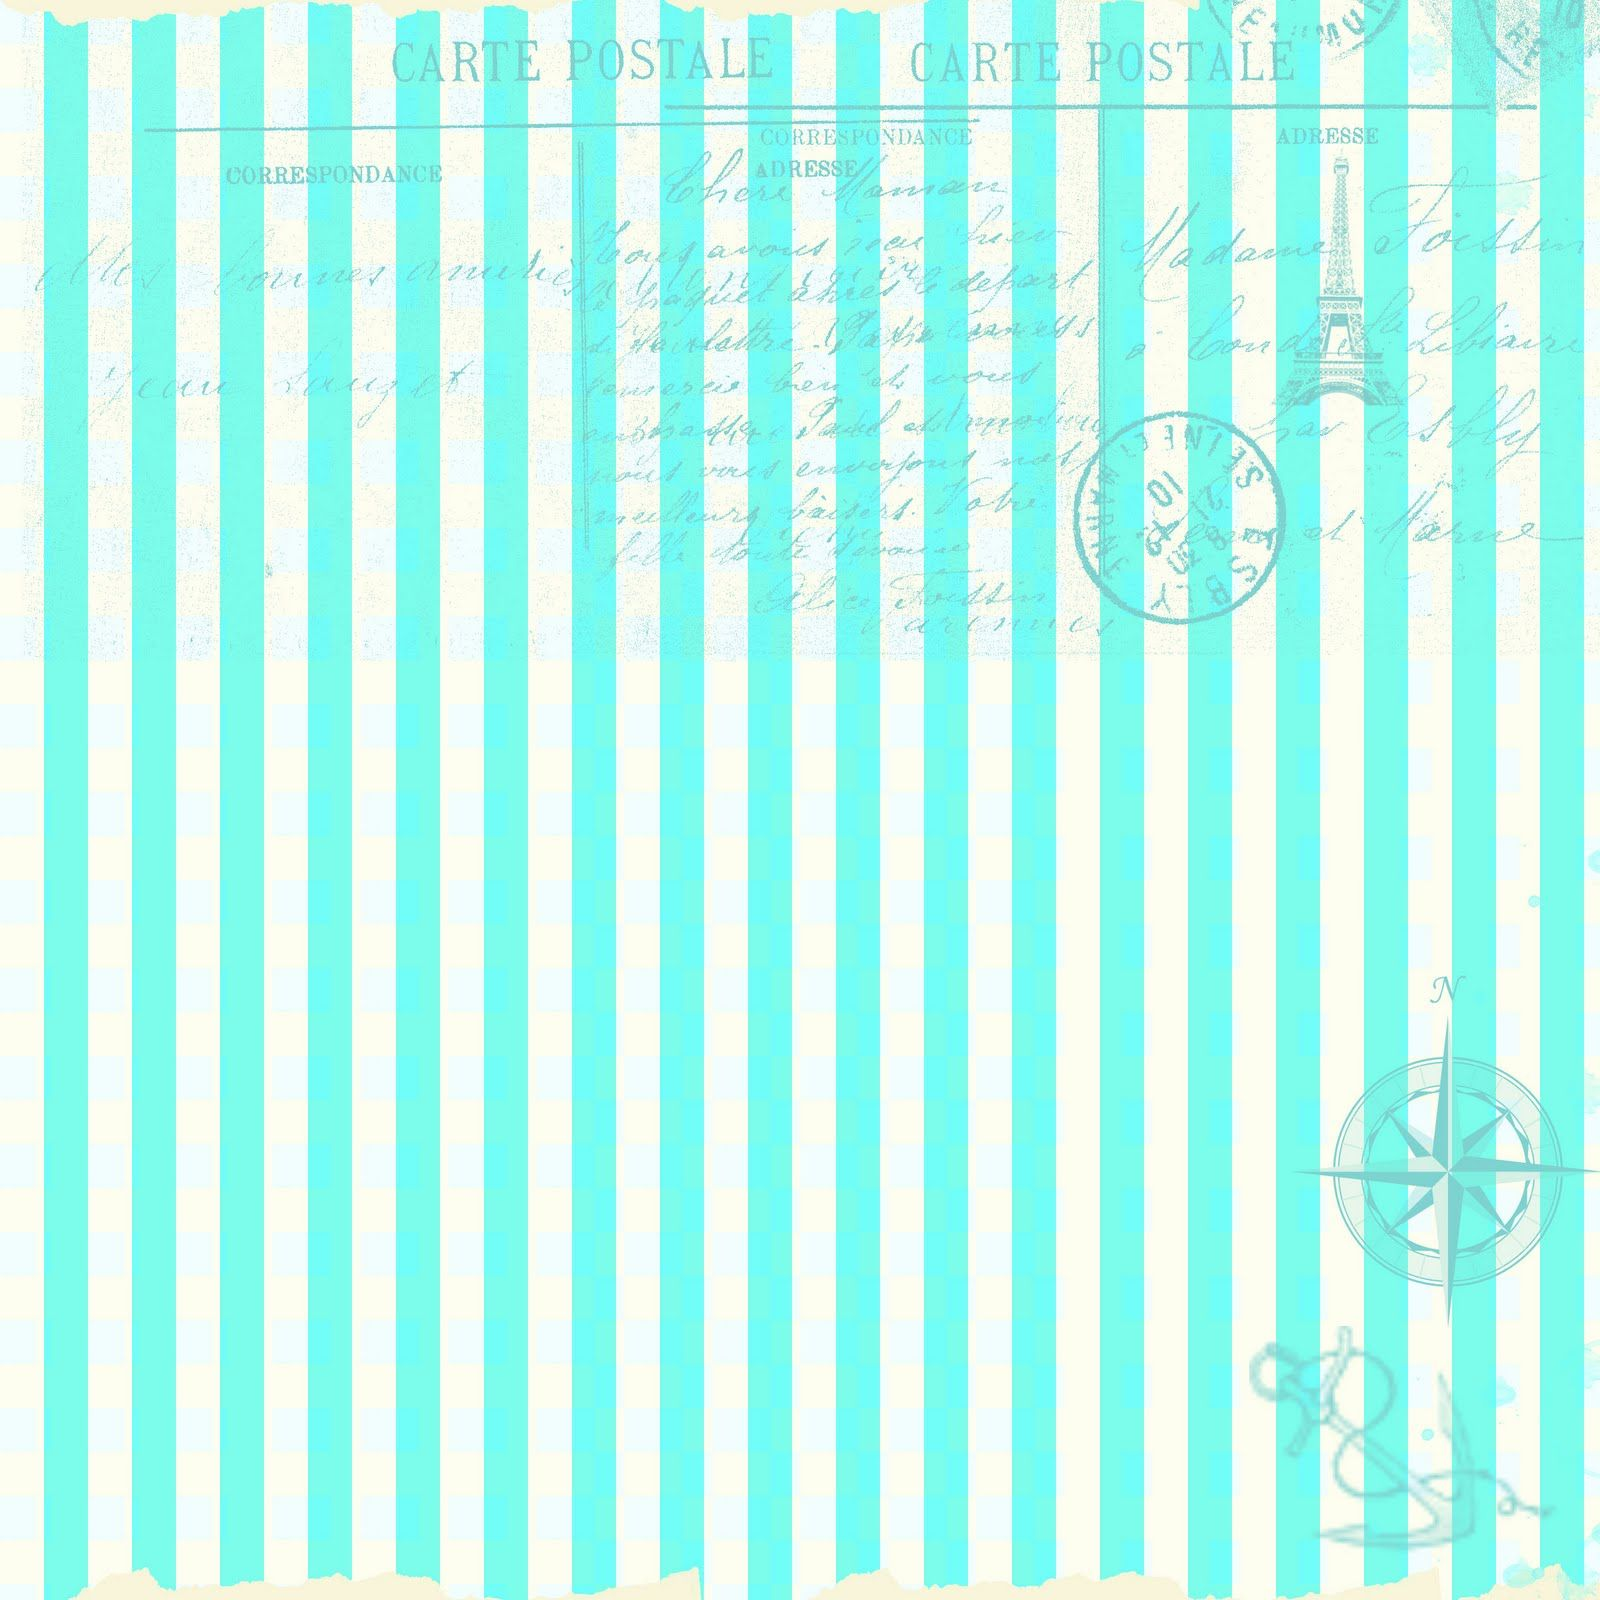 Scrapbook paper and stickers -  Free Vintage Digital Stamps Free Digital Scrapbook Paper Blue